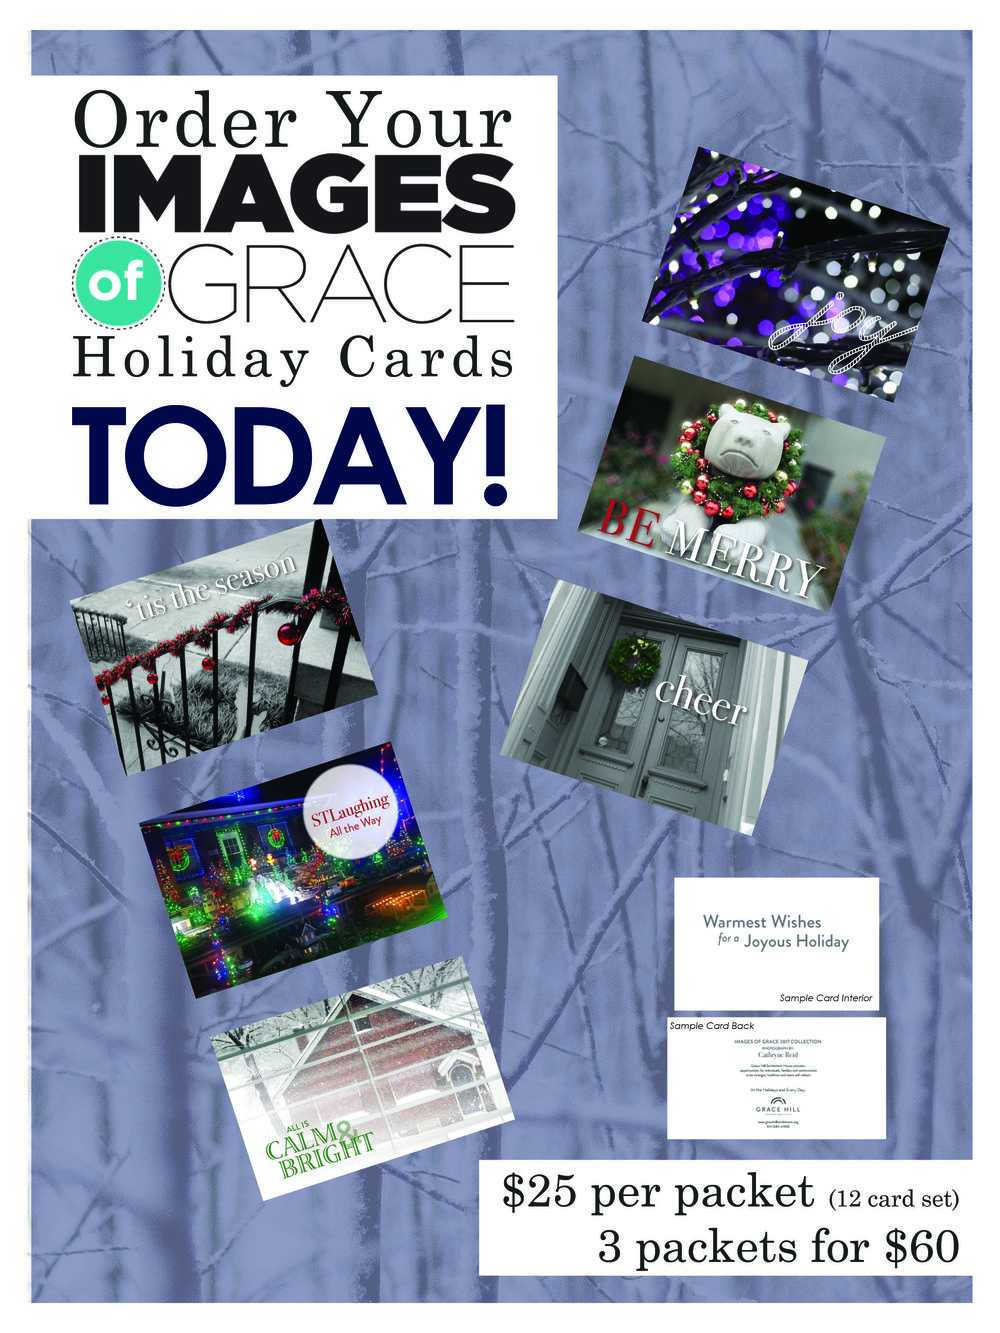 Images of Grace Holiday Cards - $25 Per 12 Card Packet (2 cards of each design)OR$60 for Three PacketsTo order, call Jana Byington-Smith at 314.584.6845 or jbsmith@GracehillSettlement.orgSpecial orders of specific cards are available upon request.